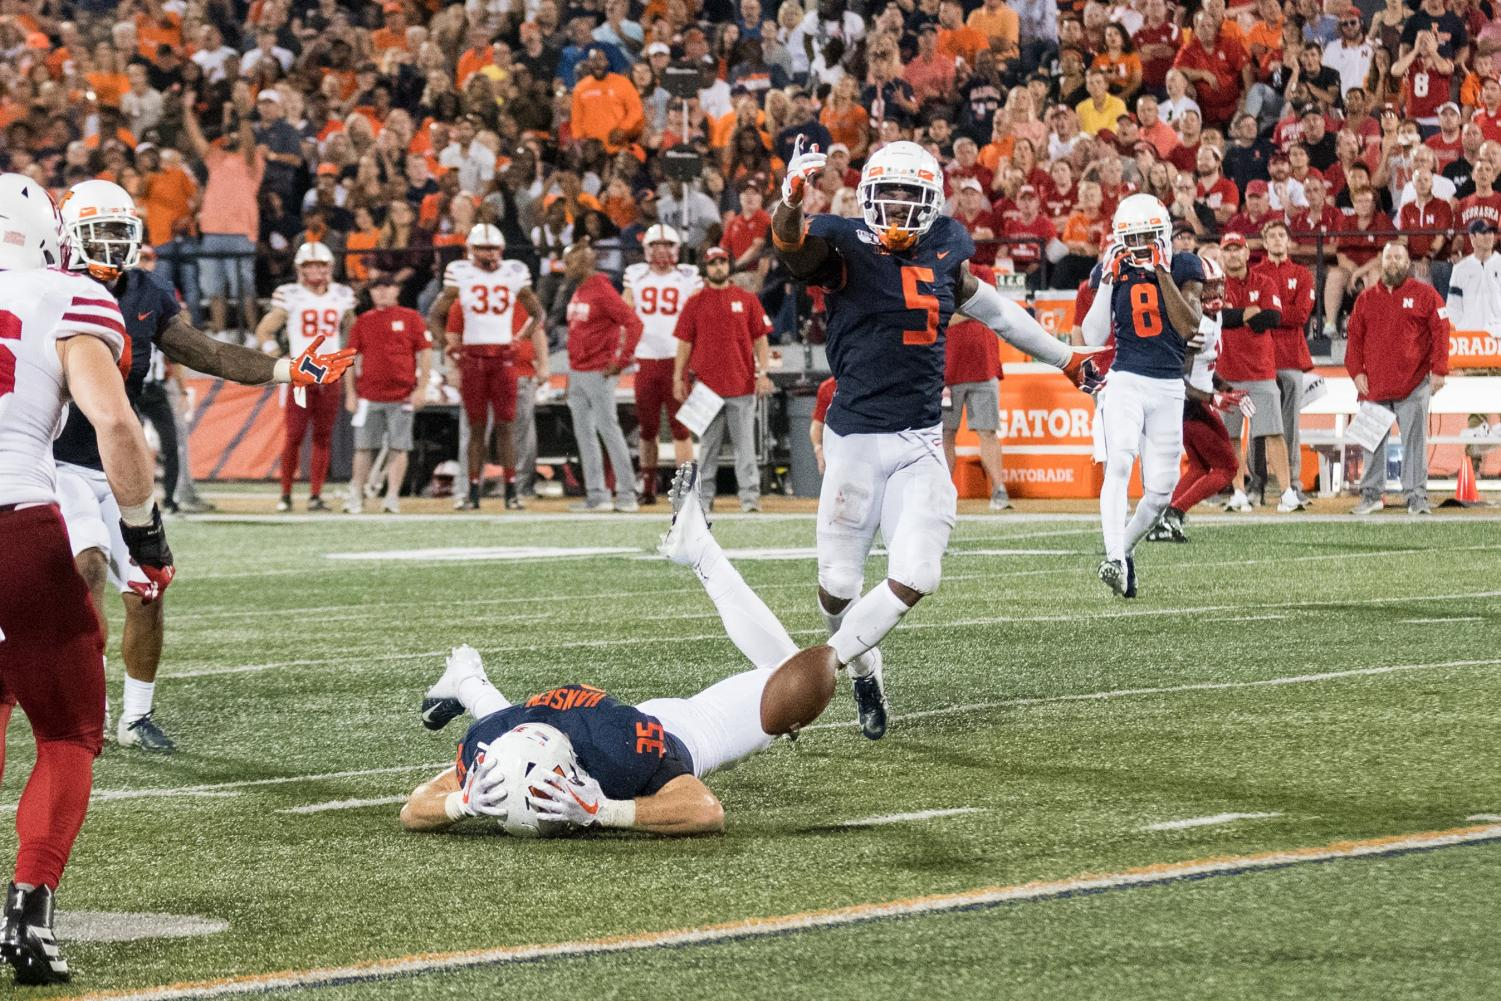 Illinois linebacker Jake Hansen reacts to a missed interception of a pass later ruled as a fumble. Illinois lost to Nebraska 38-42.